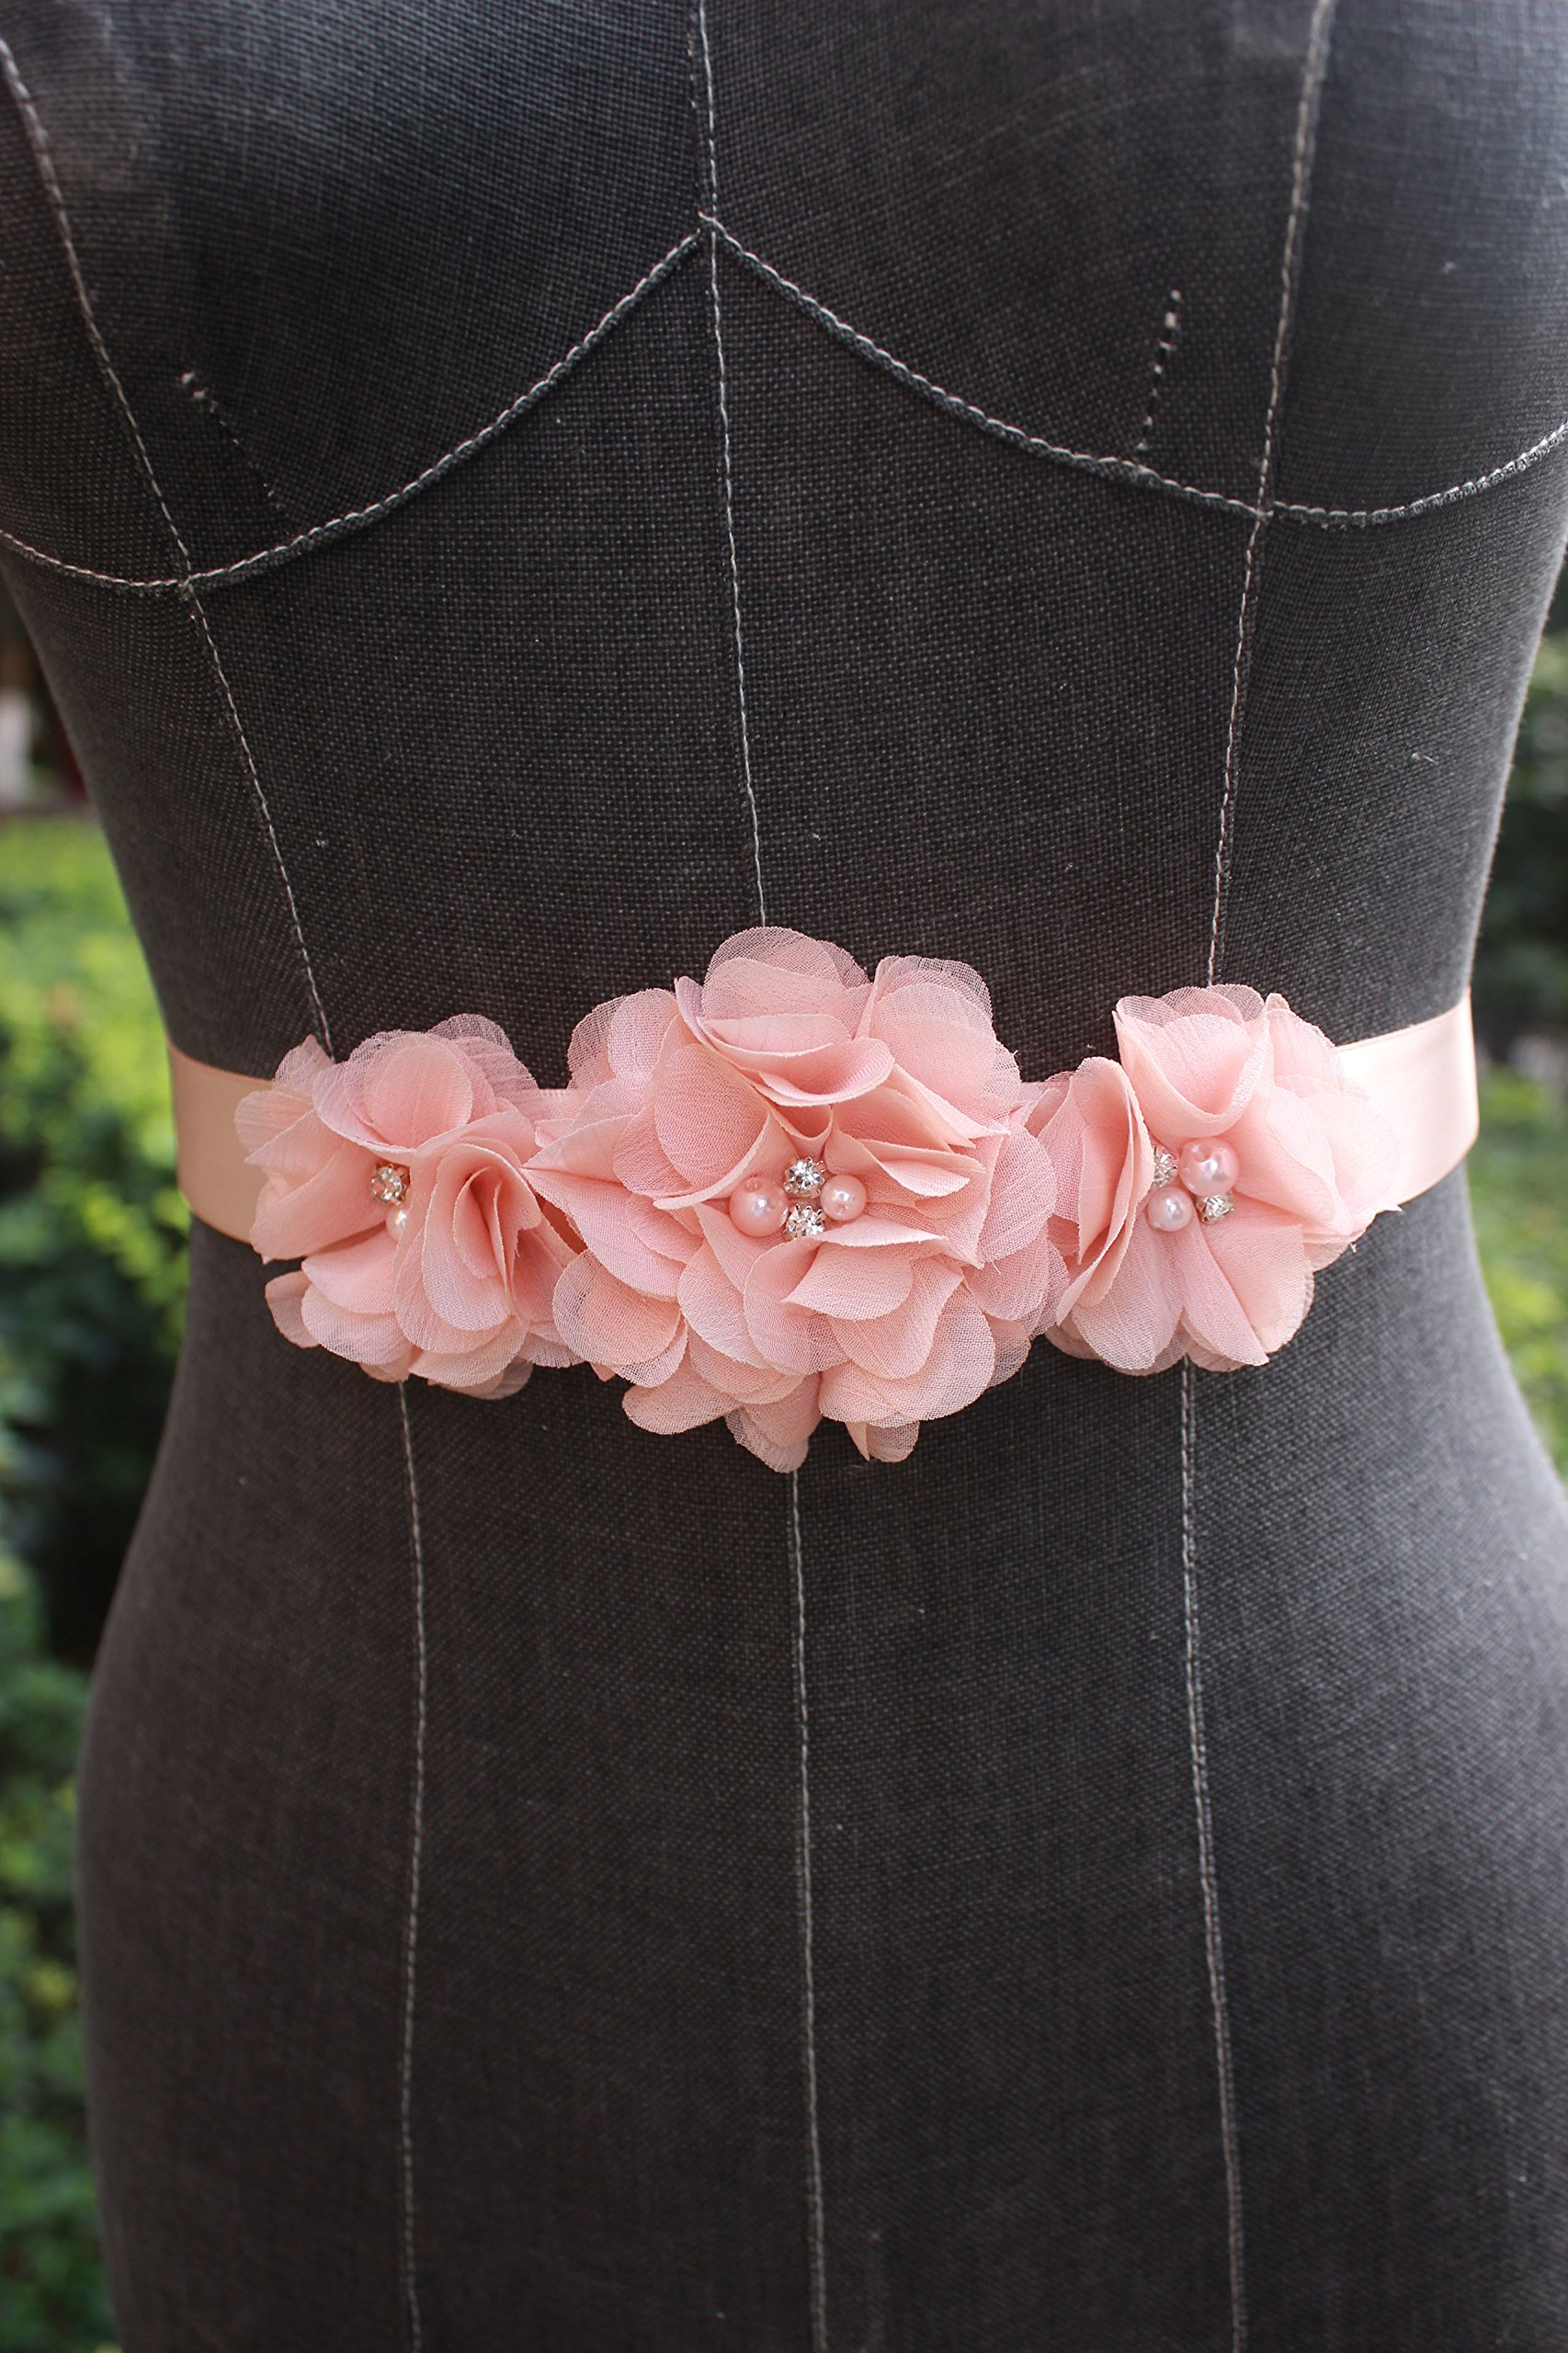 Bridesmaid and Flowergirls sashes wedding sash pearls flowers belts (Peach) by nania (Image #2)